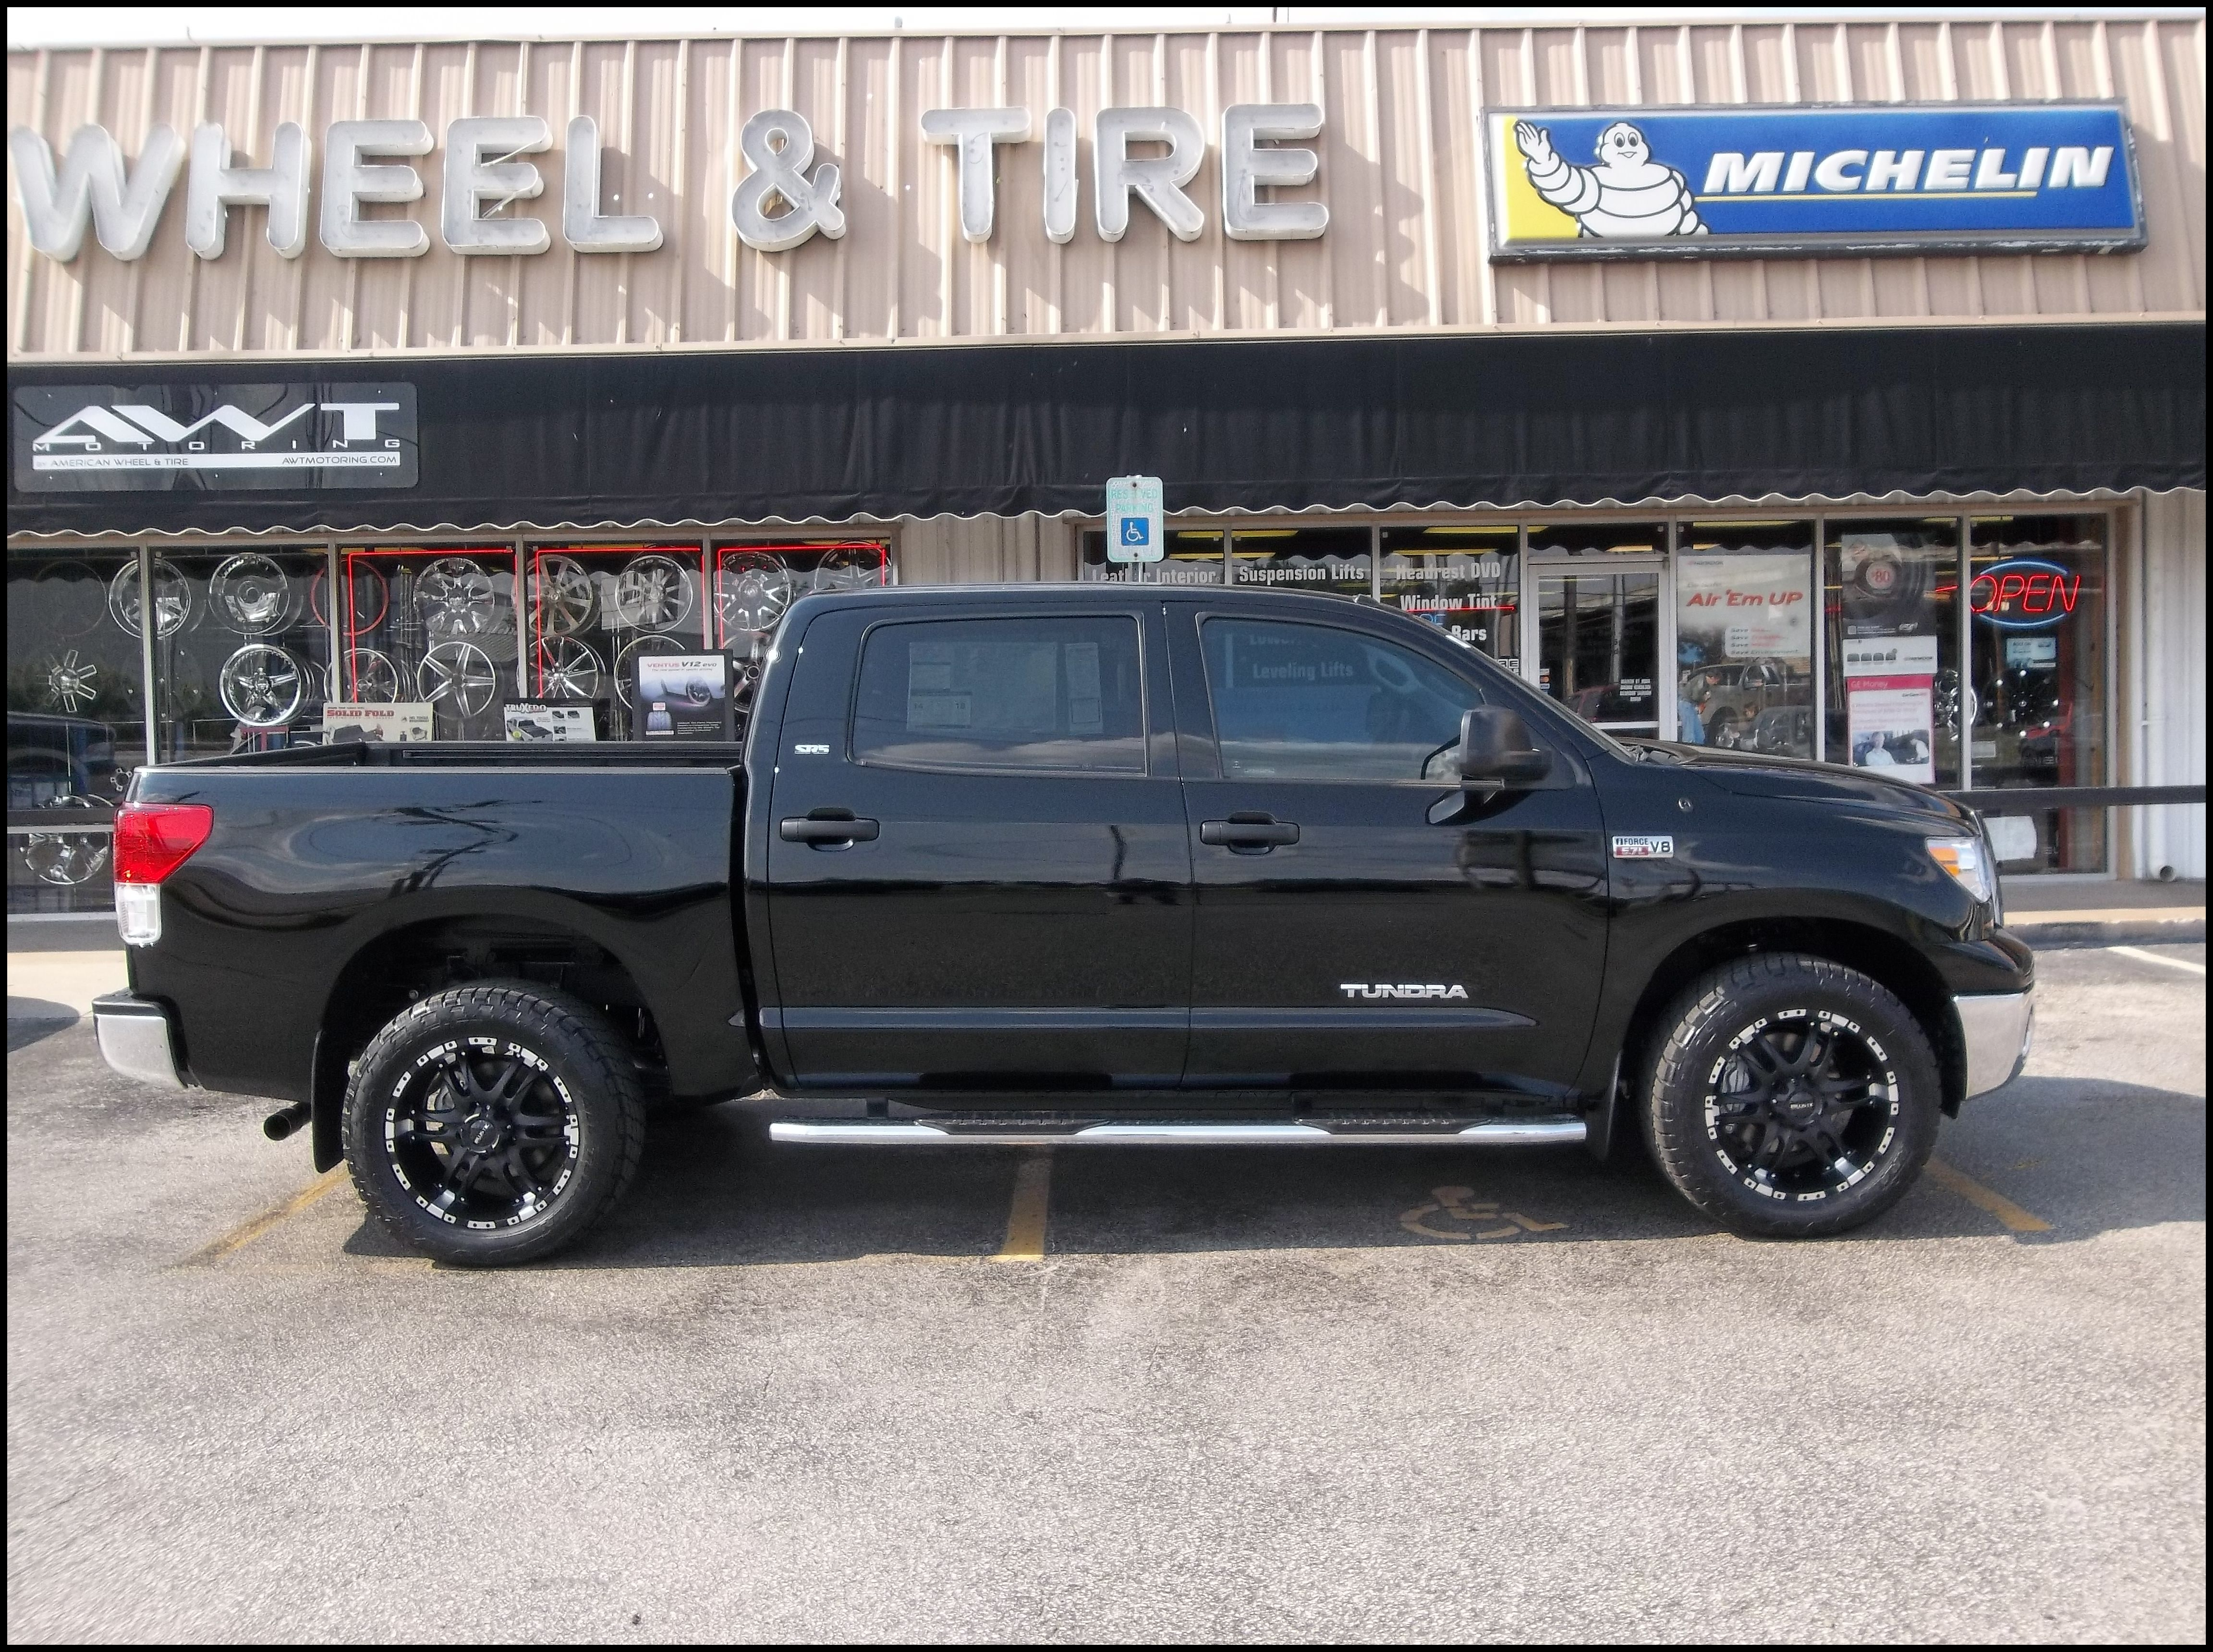 Lifted Toyota Tundra with Black Rims Find the Classic Rims of Your Dreams